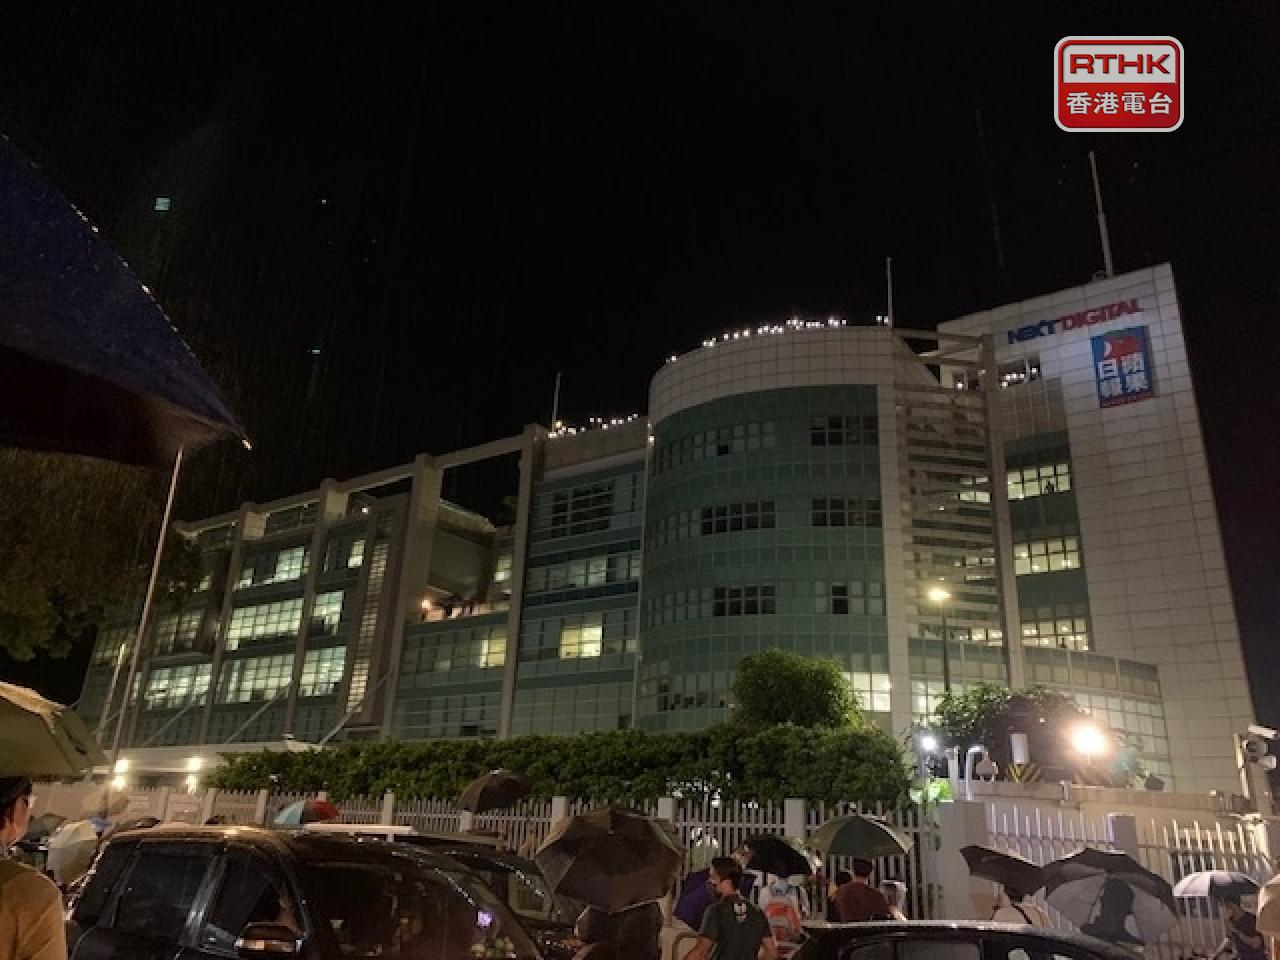 The Security Bureau says people should not be misled by Next Digital's statement. File photo: RTHK